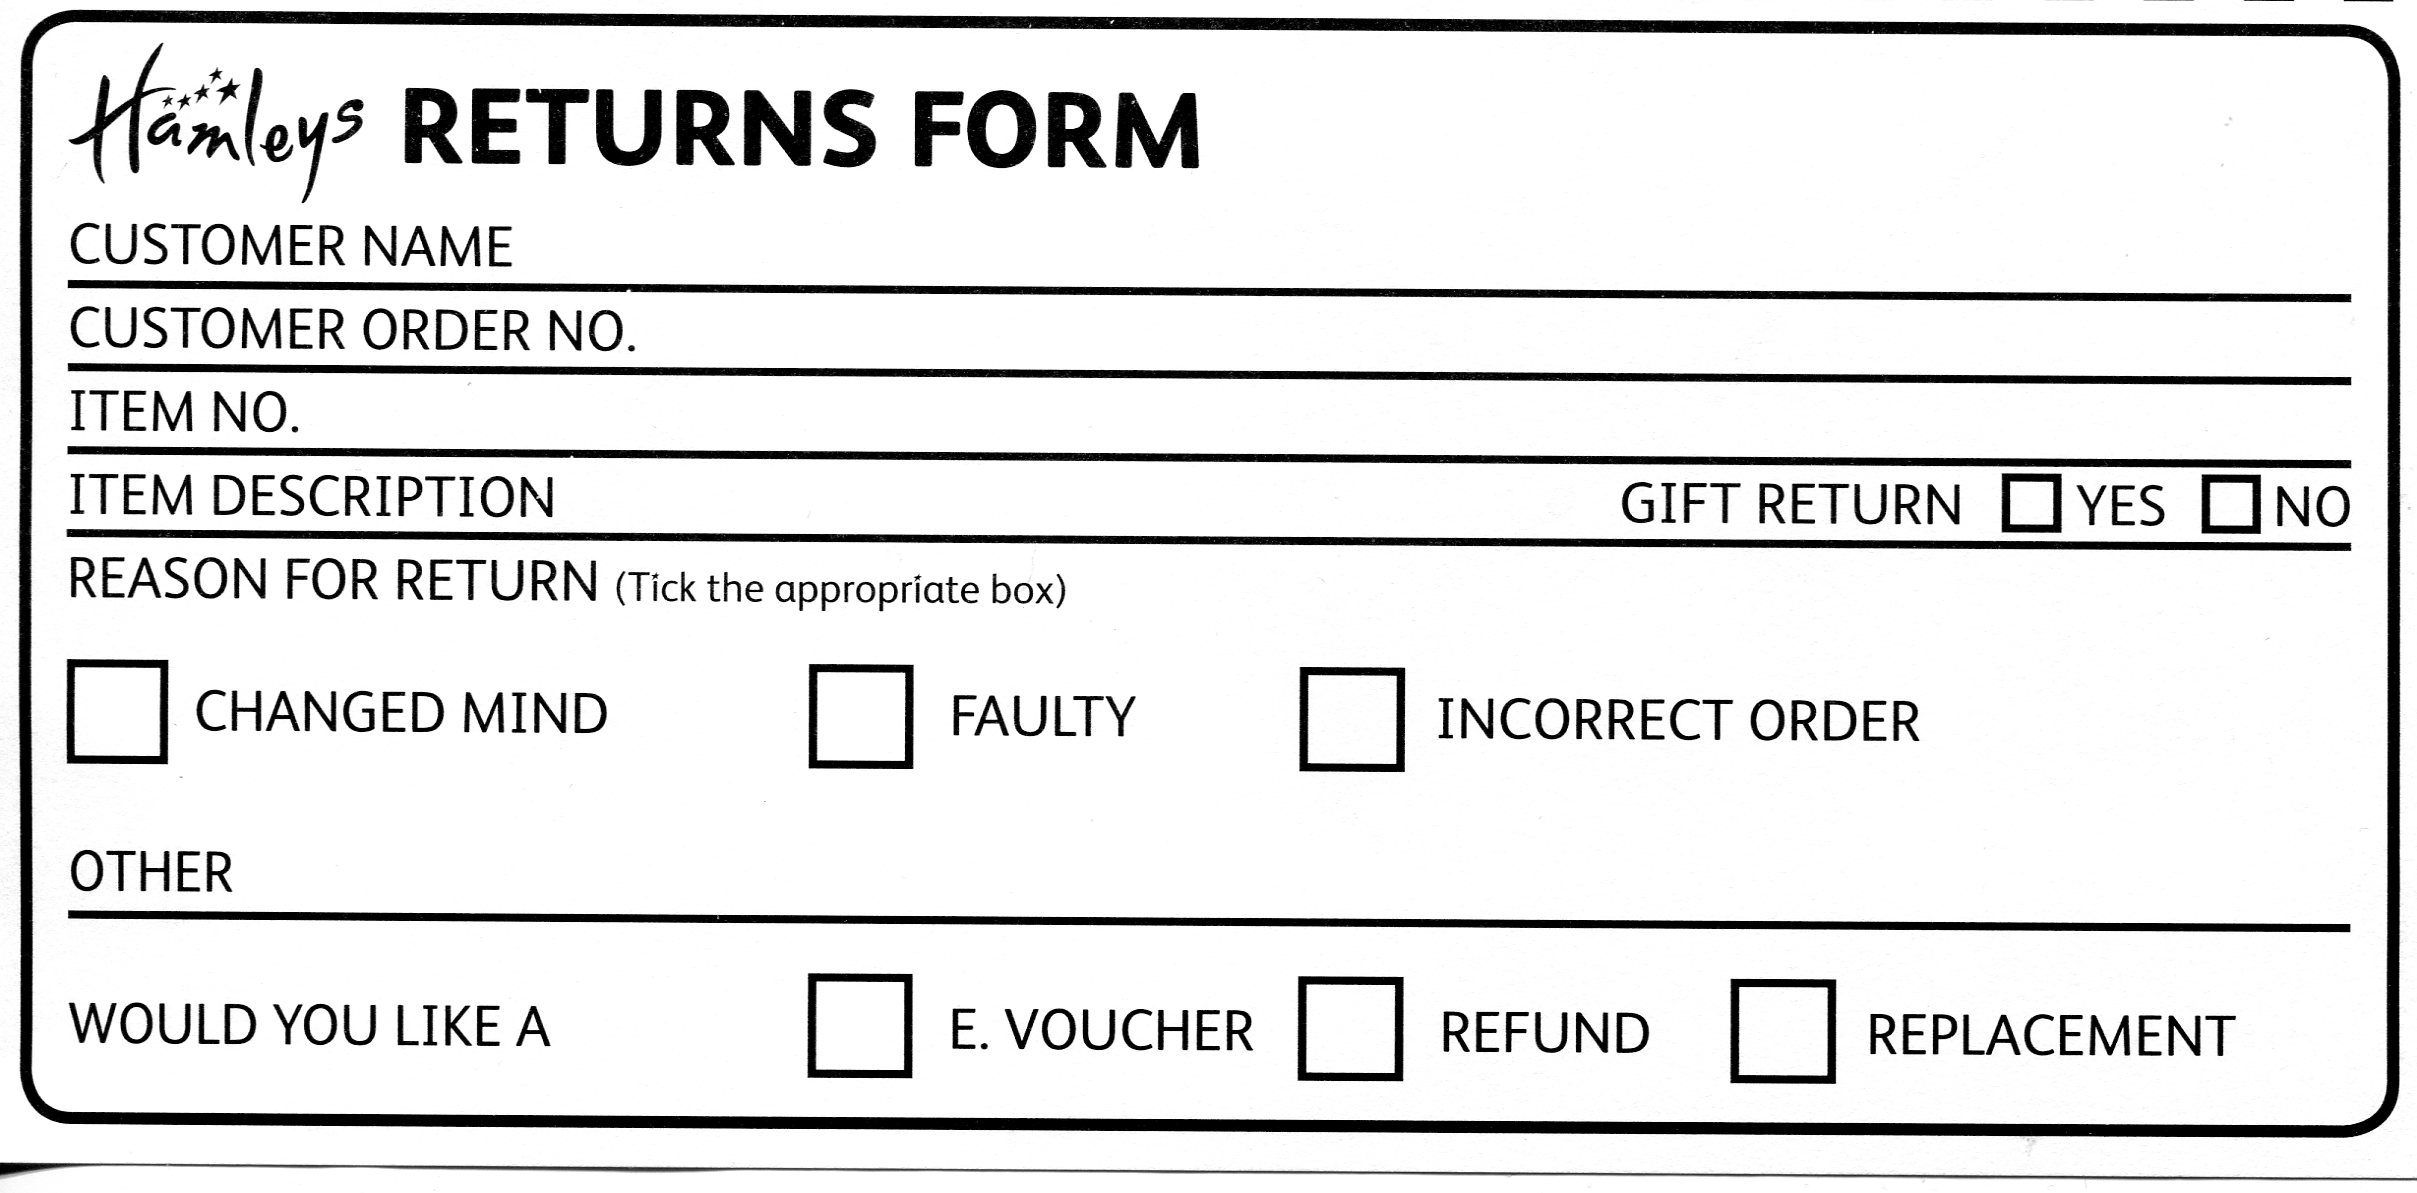 payslip word format – Payslip Sample Word Format